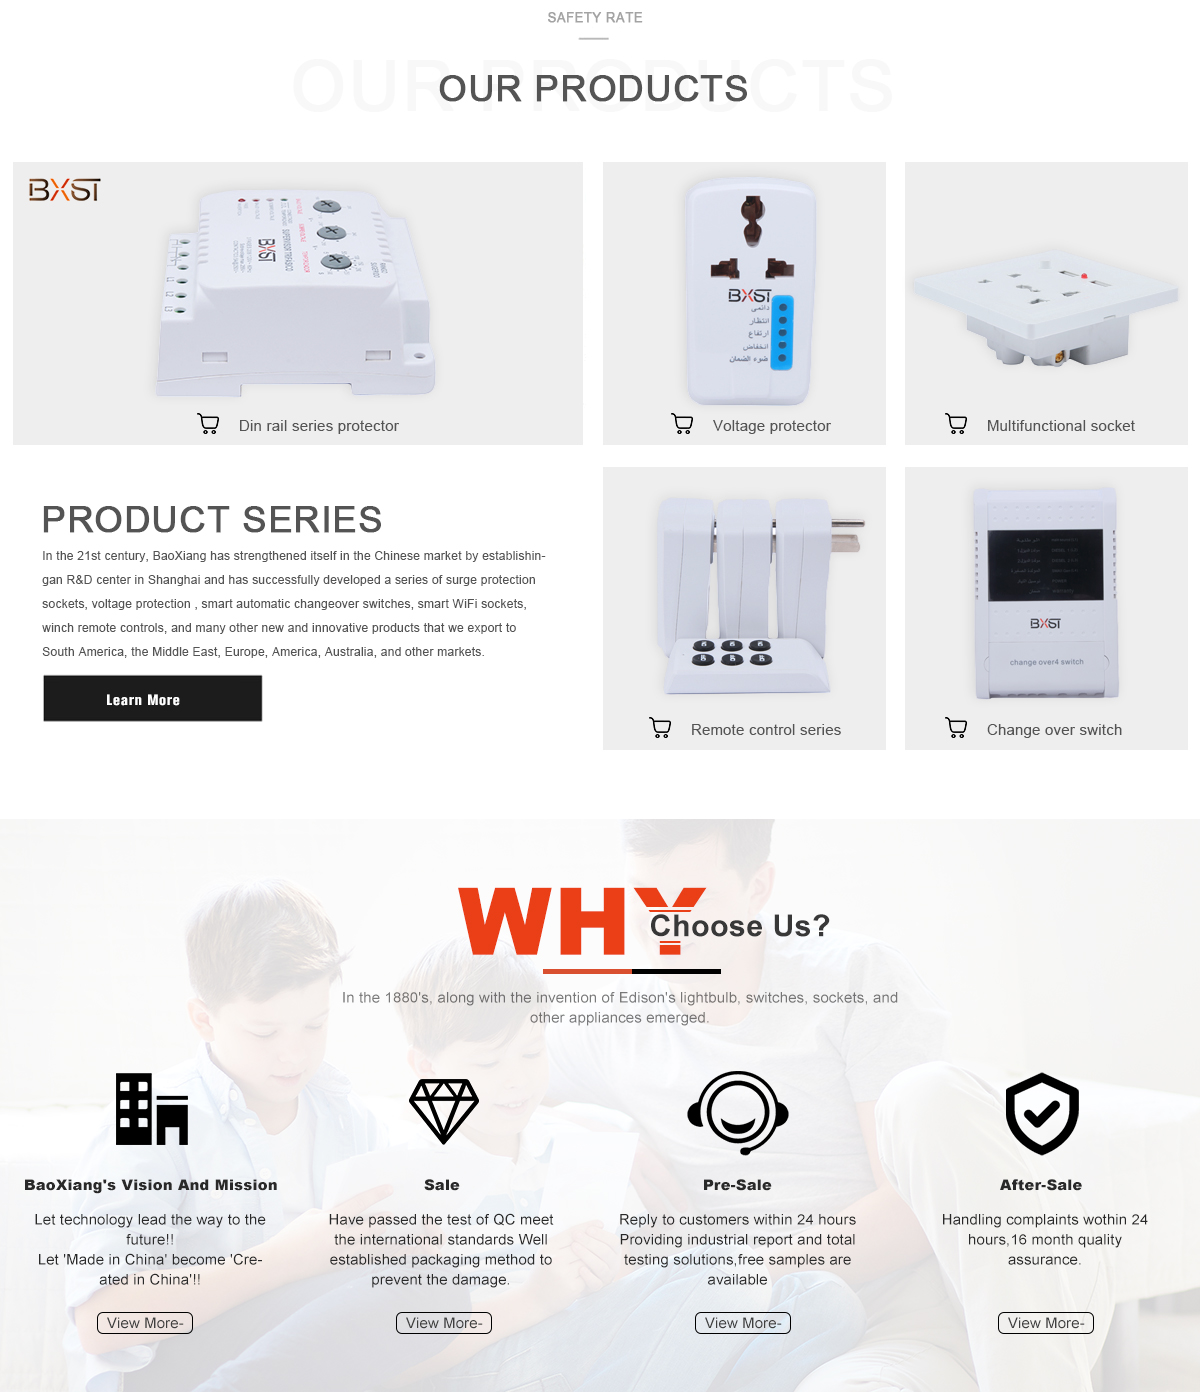 Wenzhou BXST Co., Ltd. - Protector, Change Over Switch